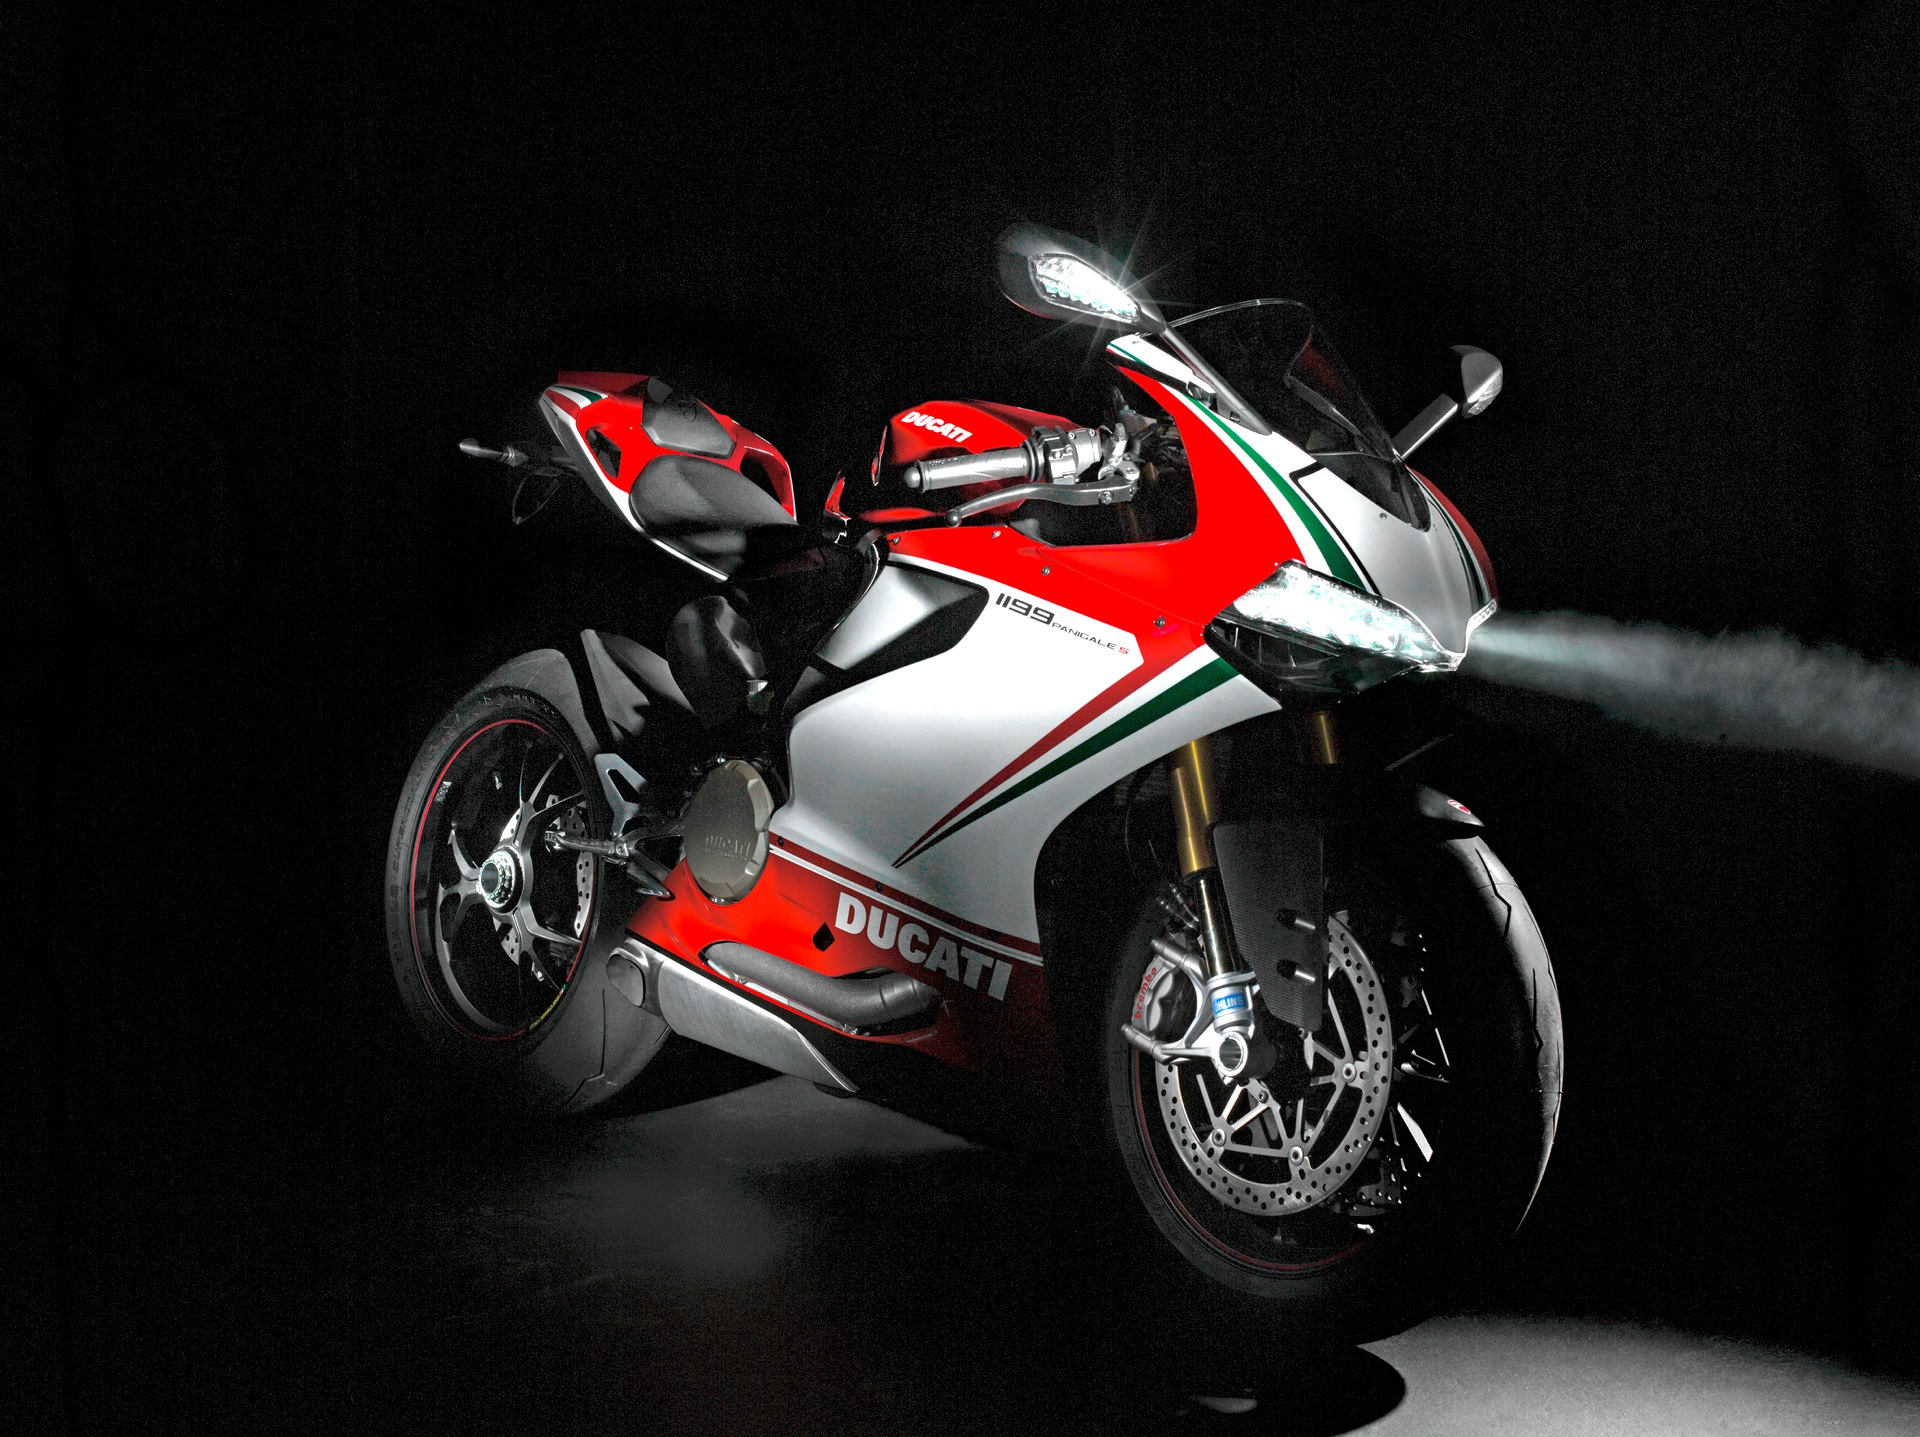 2012 ducati superbike 1199 panigale s tricolore review - gallery